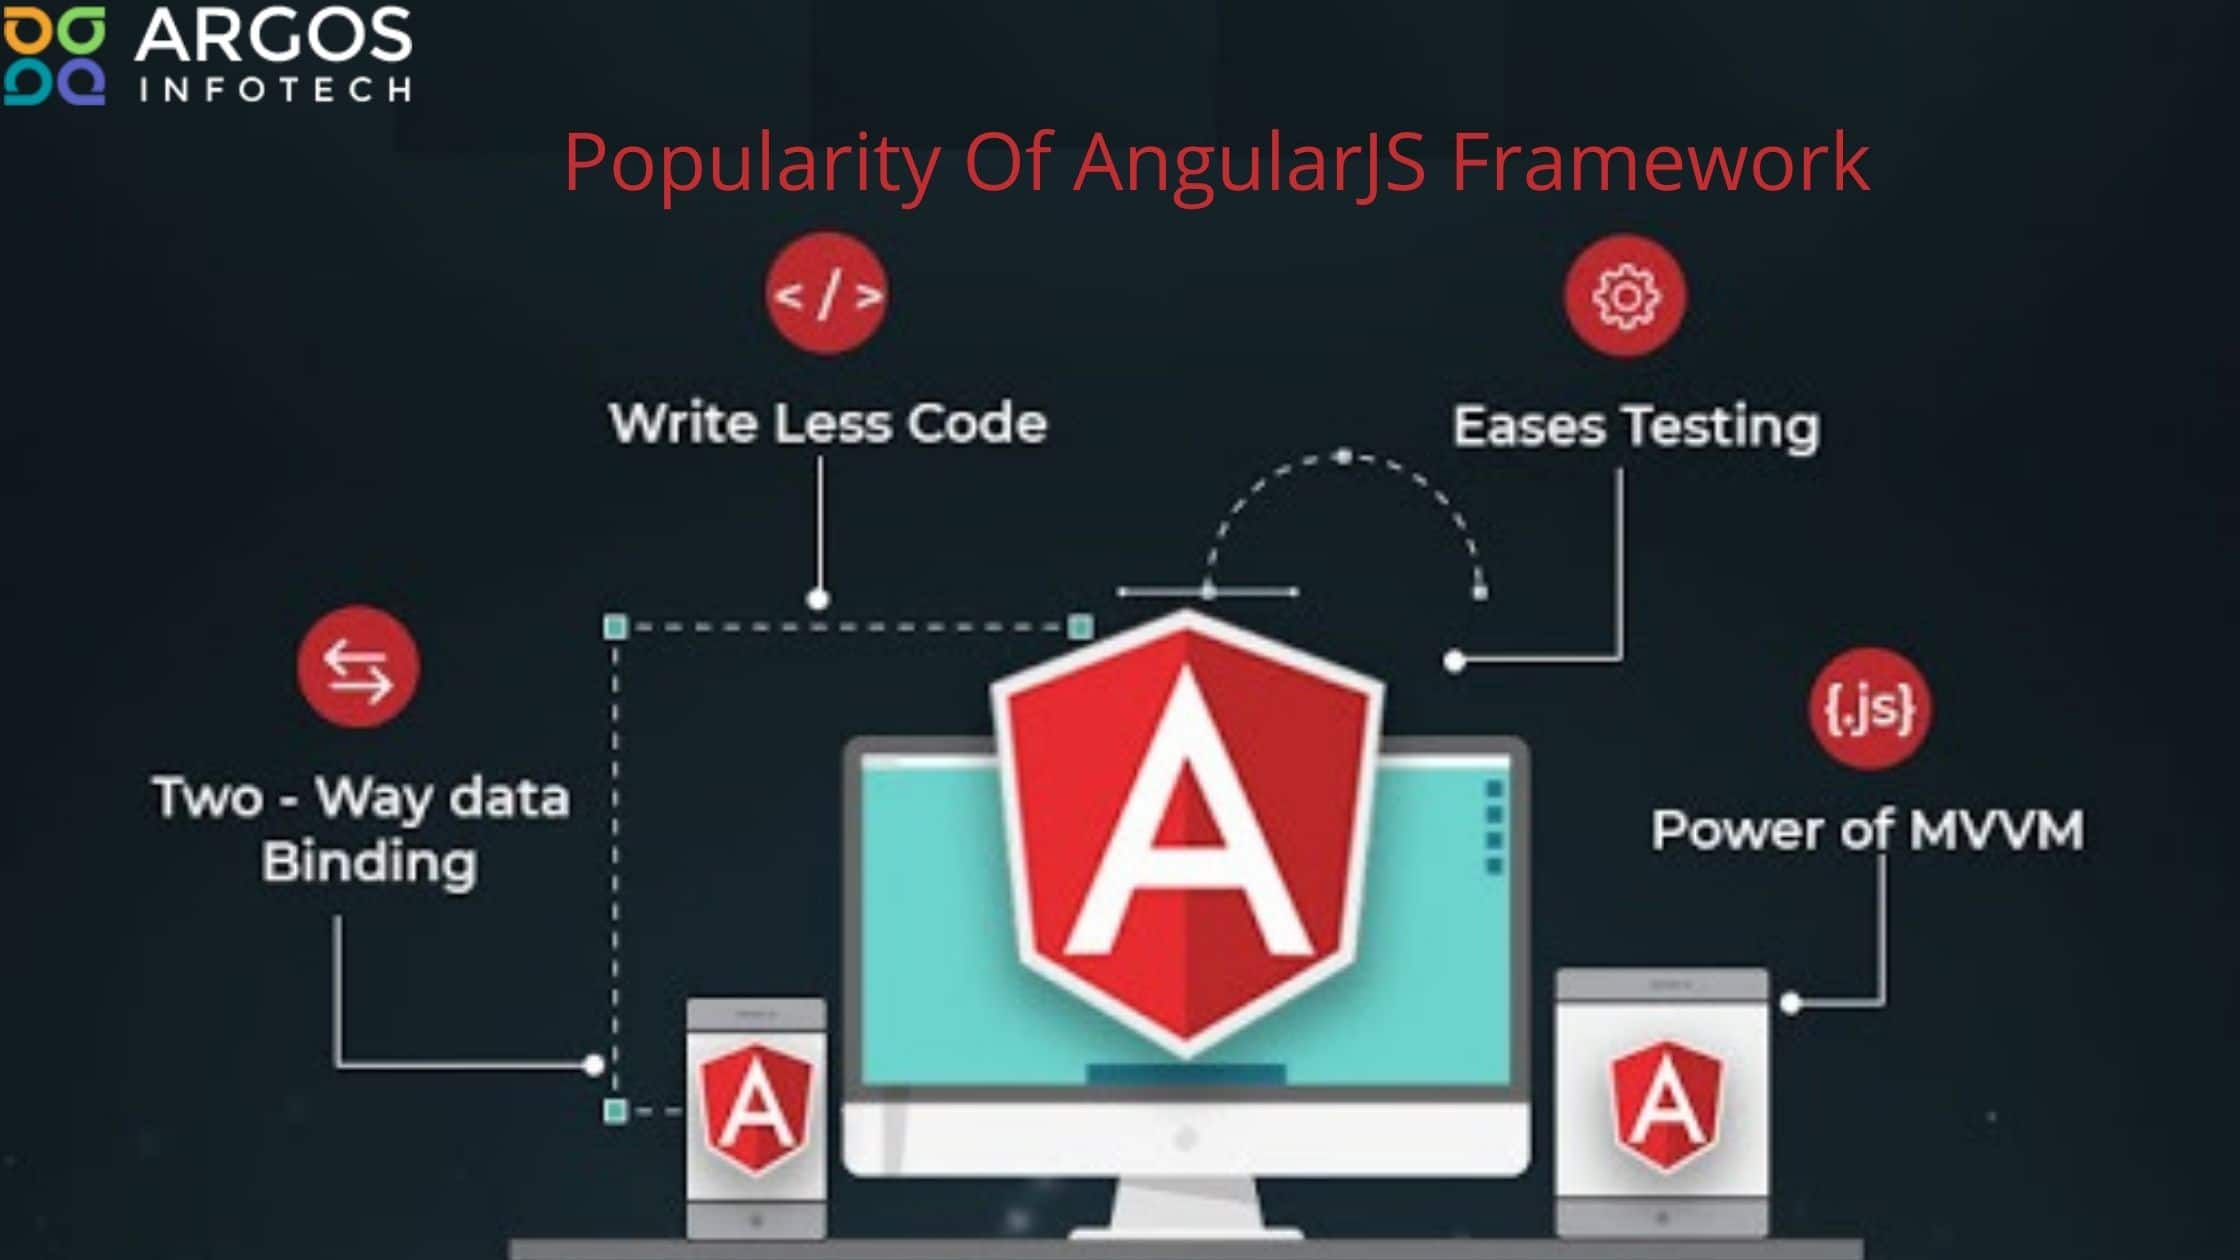 Reasons Behind The Popularity Of AngularJS Framework